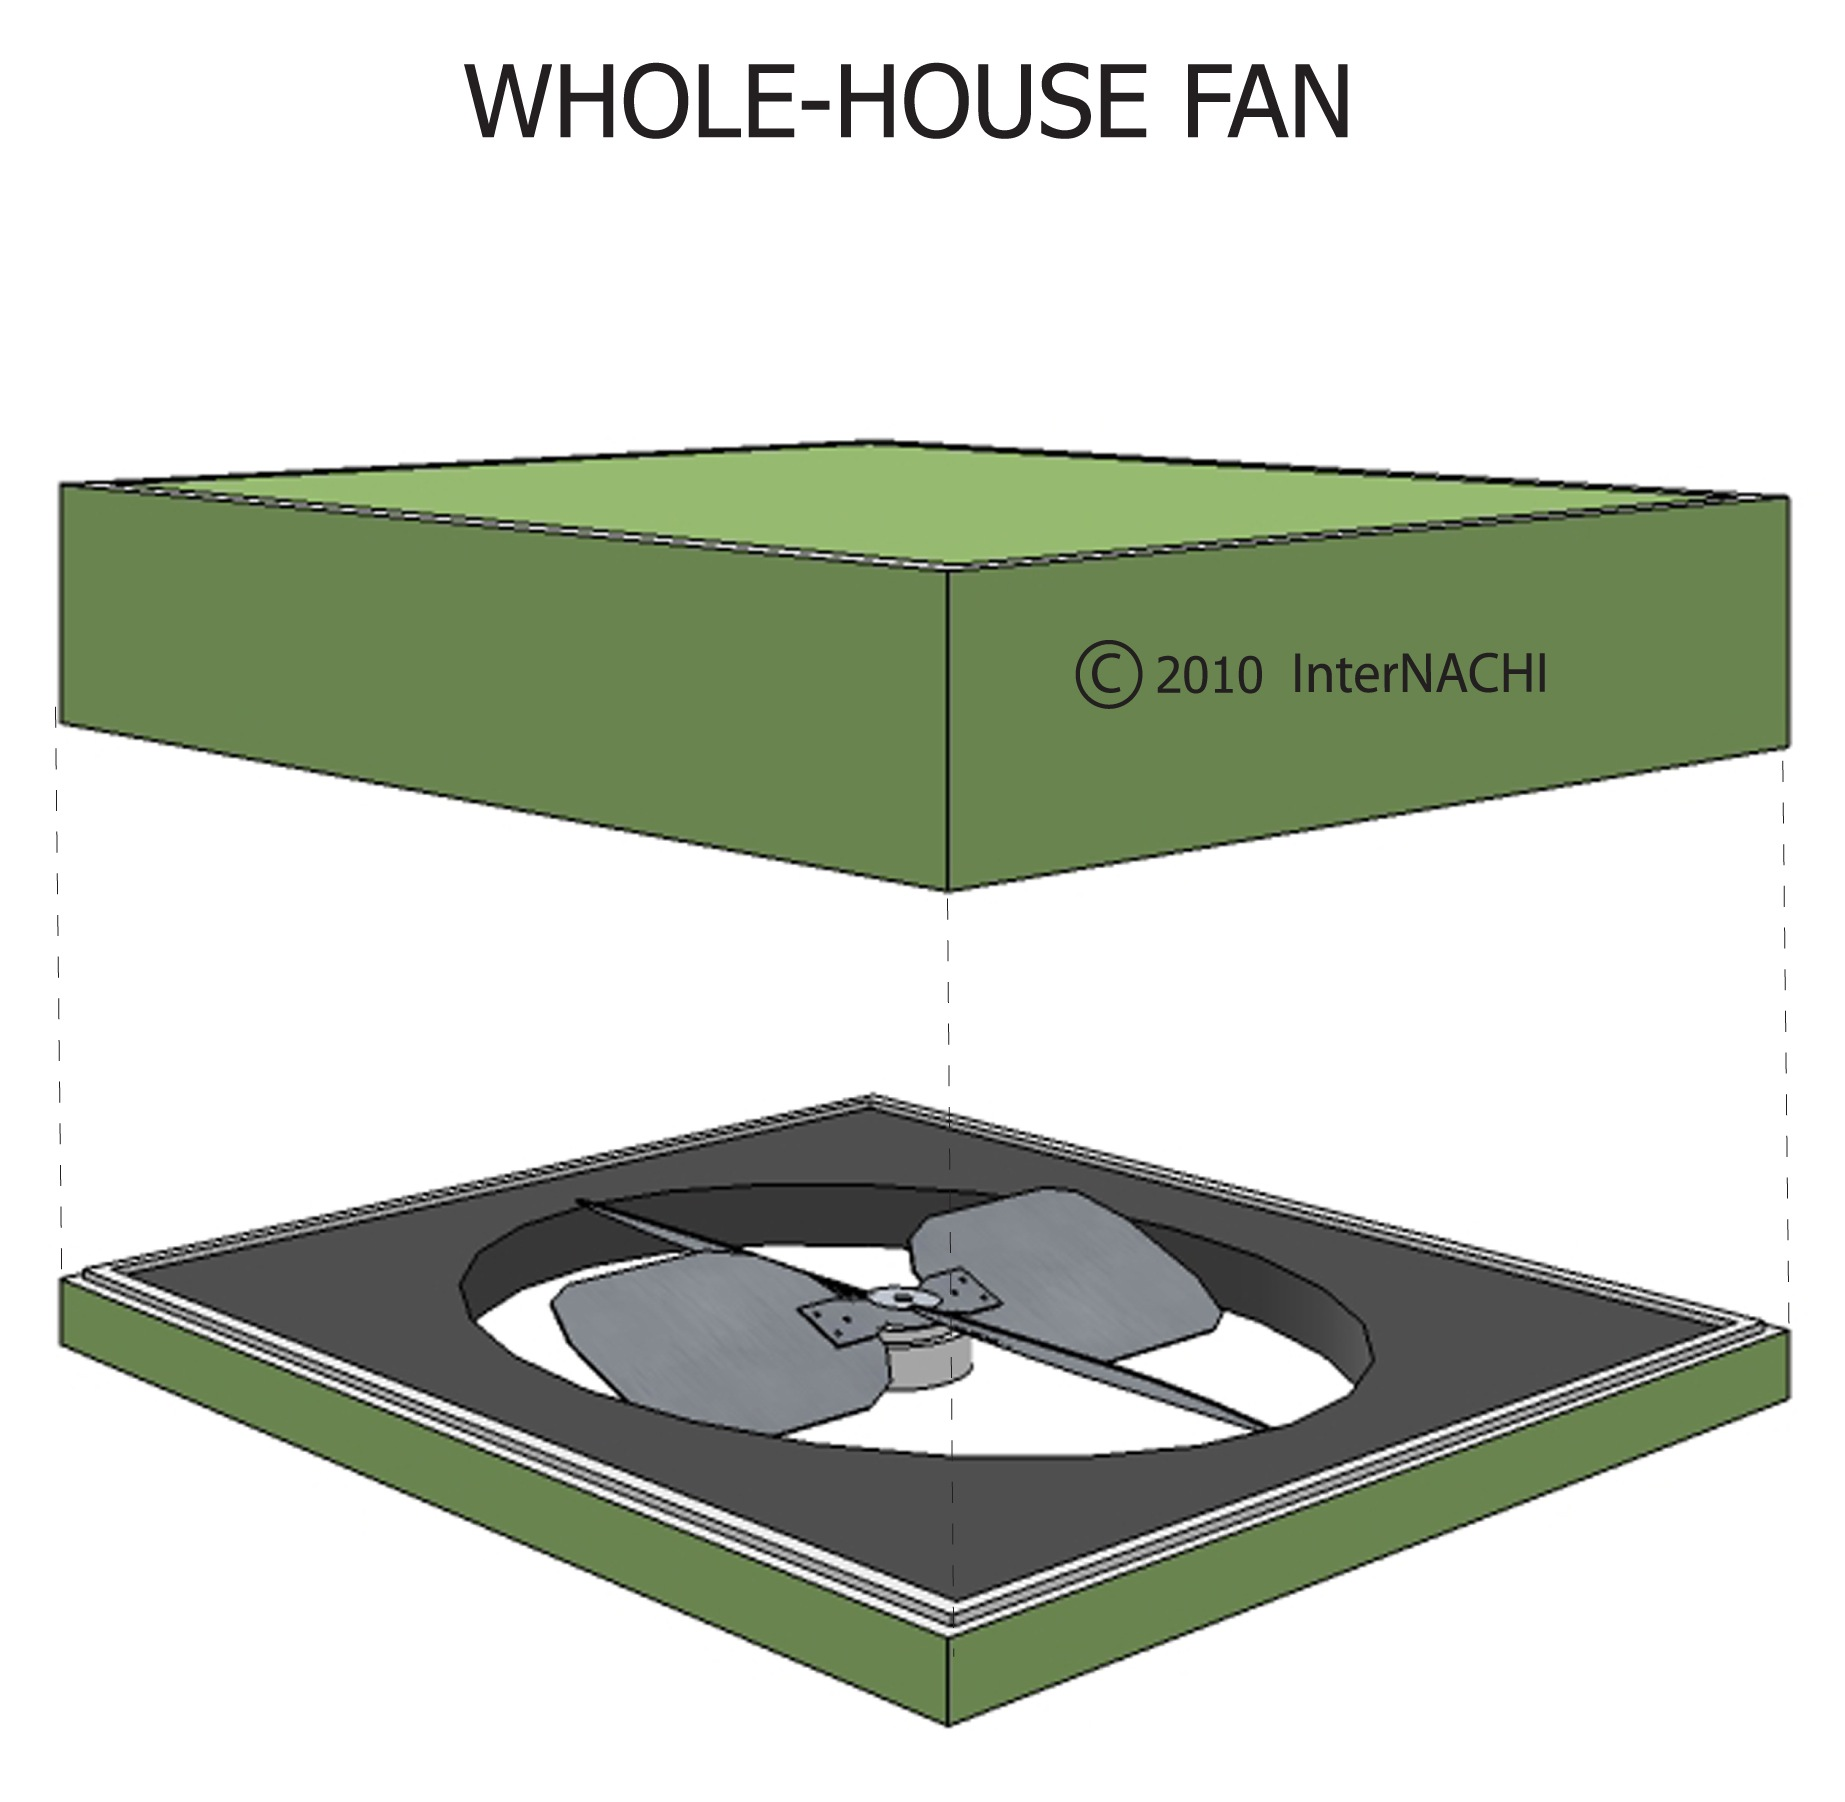 whole-house-fan.jpg